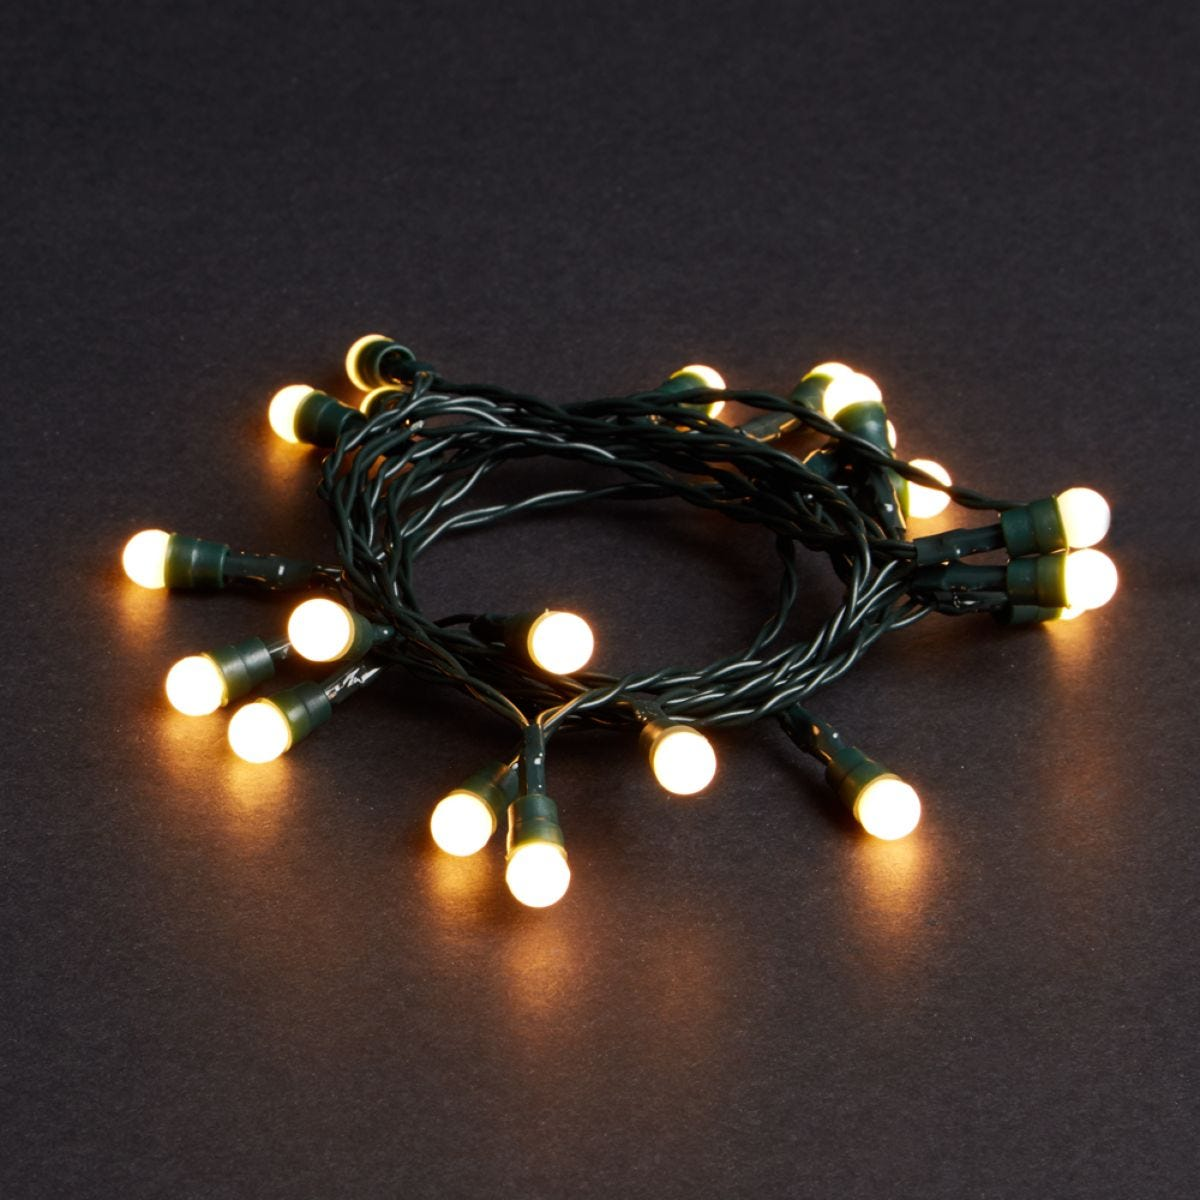 Robert Dyas Battery Operated 20 LED Berry Lights - Warm White